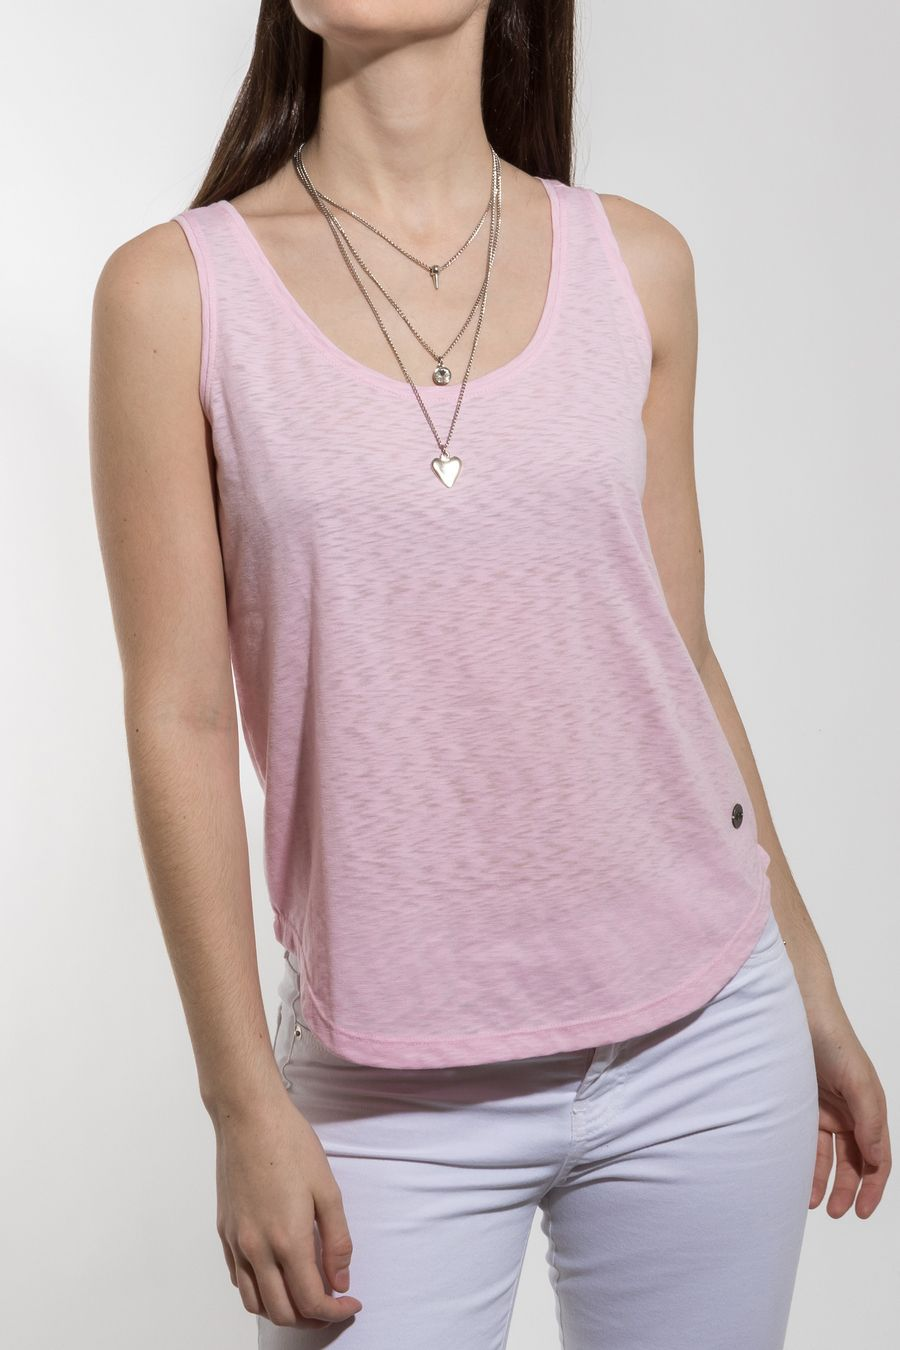 MUSCULOSA--BASICA-CANDY